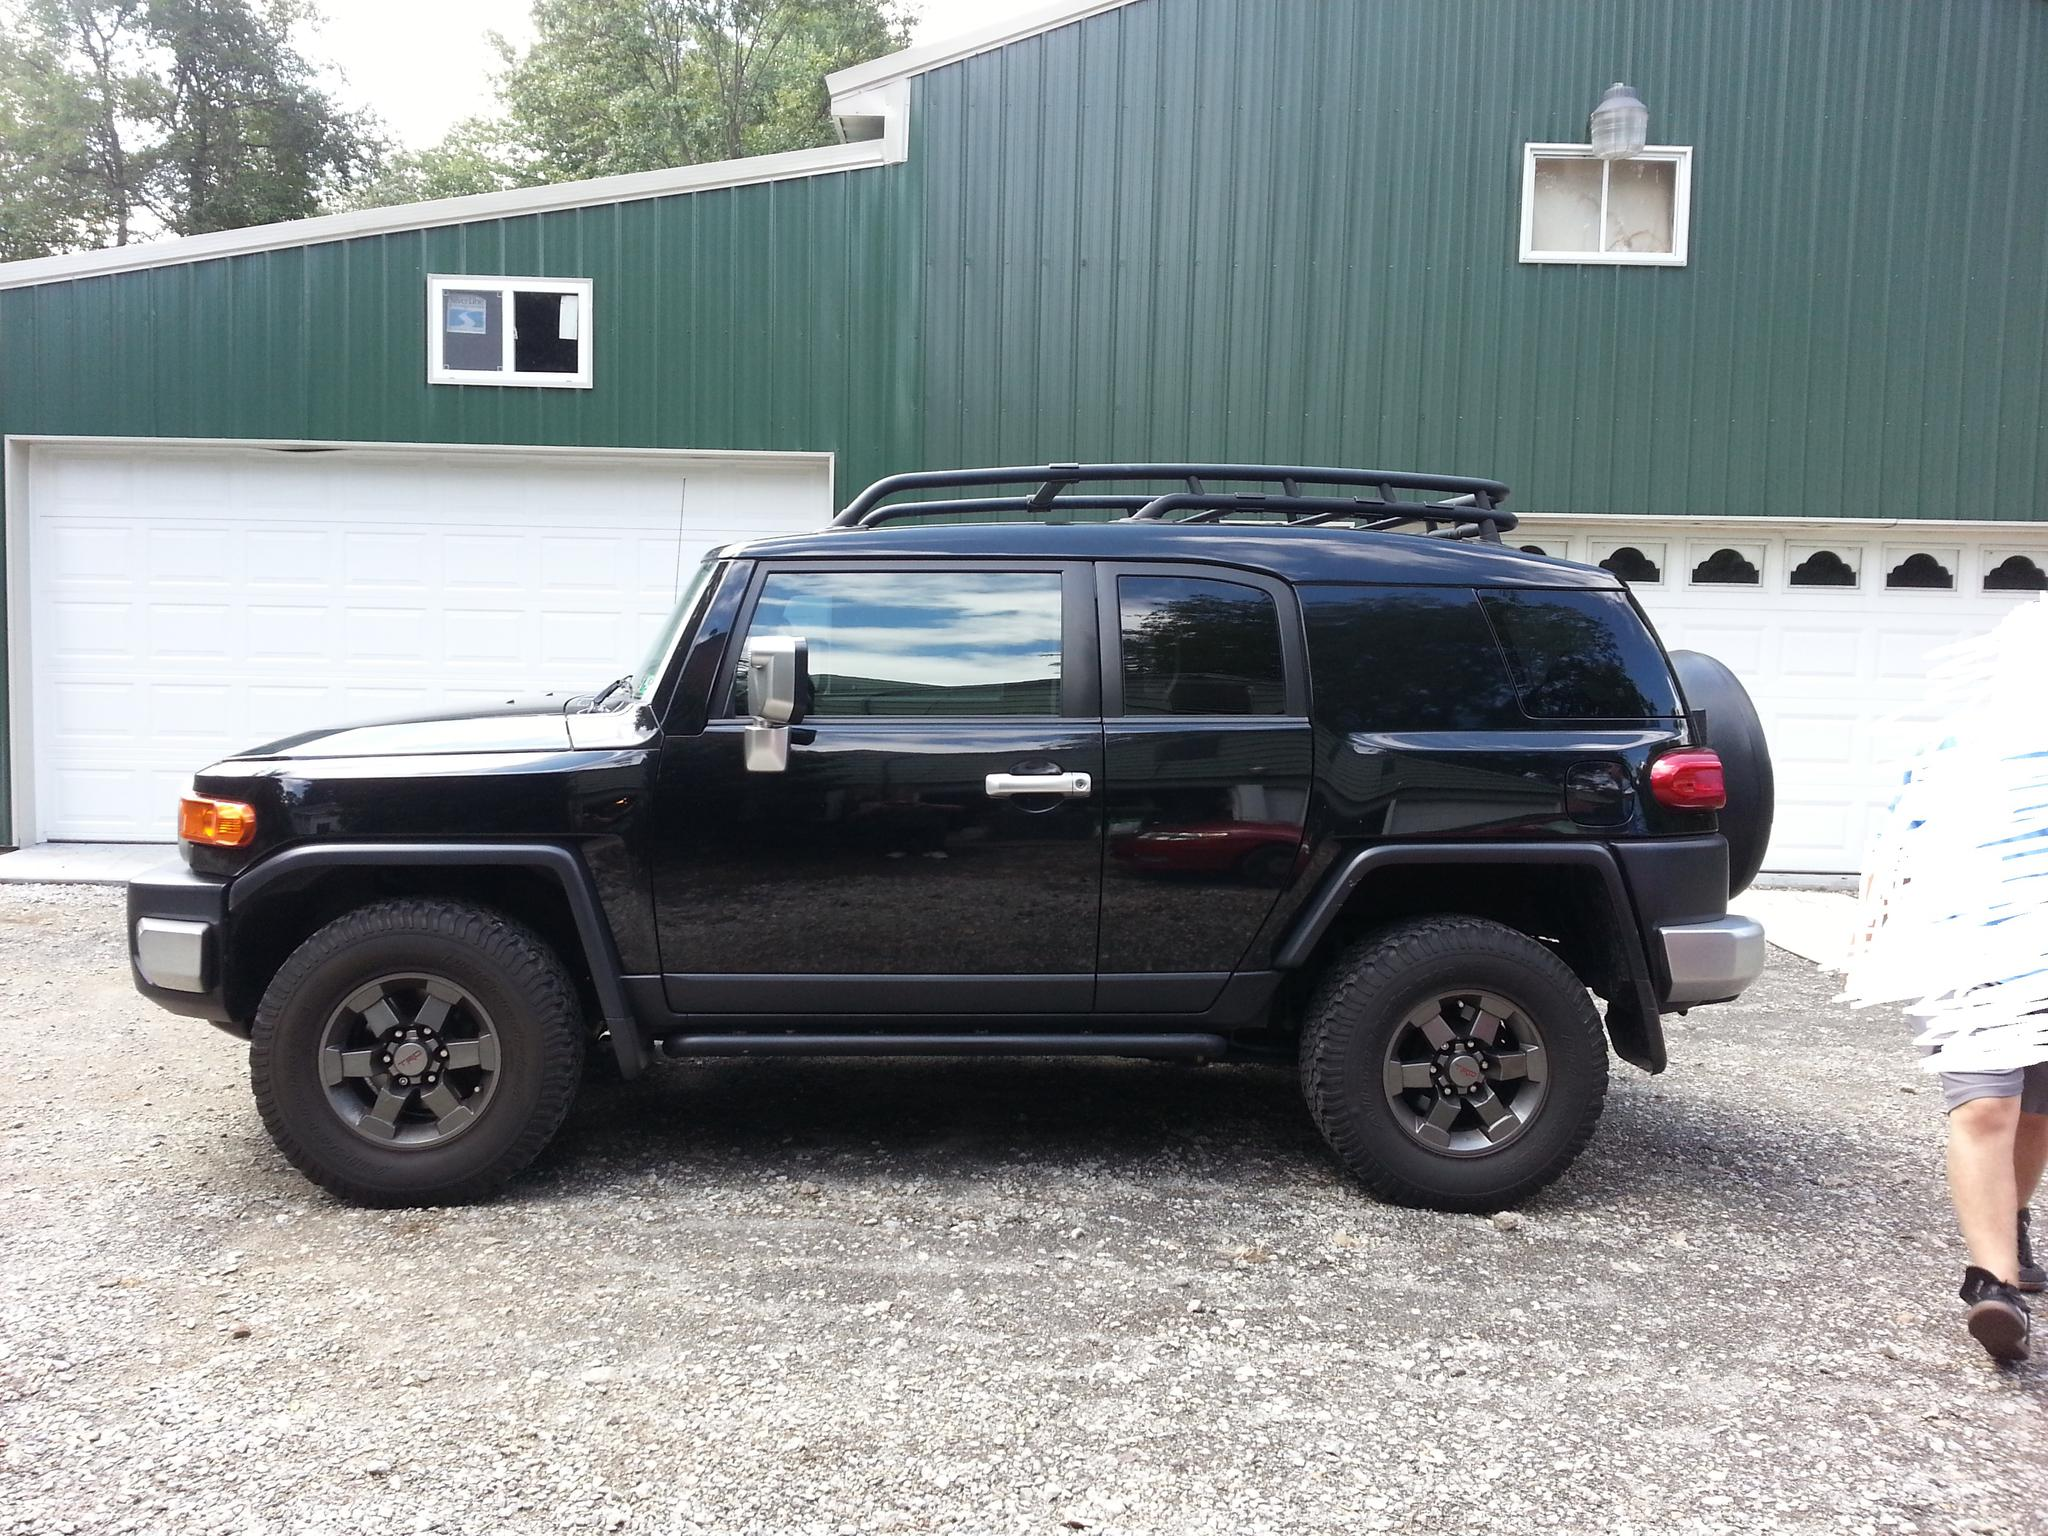 2007 toyota fj cruiser trd special edition toyota fj cruiser forum. Black Bedroom Furniture Sets. Home Design Ideas